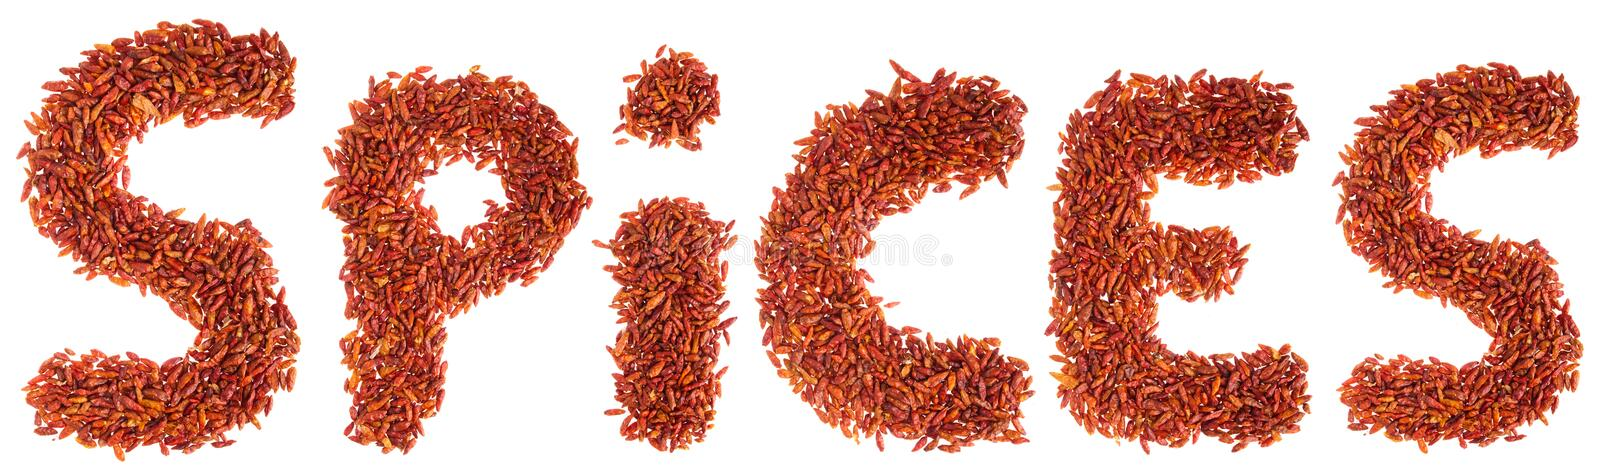 Spices written with chilli peppers royalty free stock images